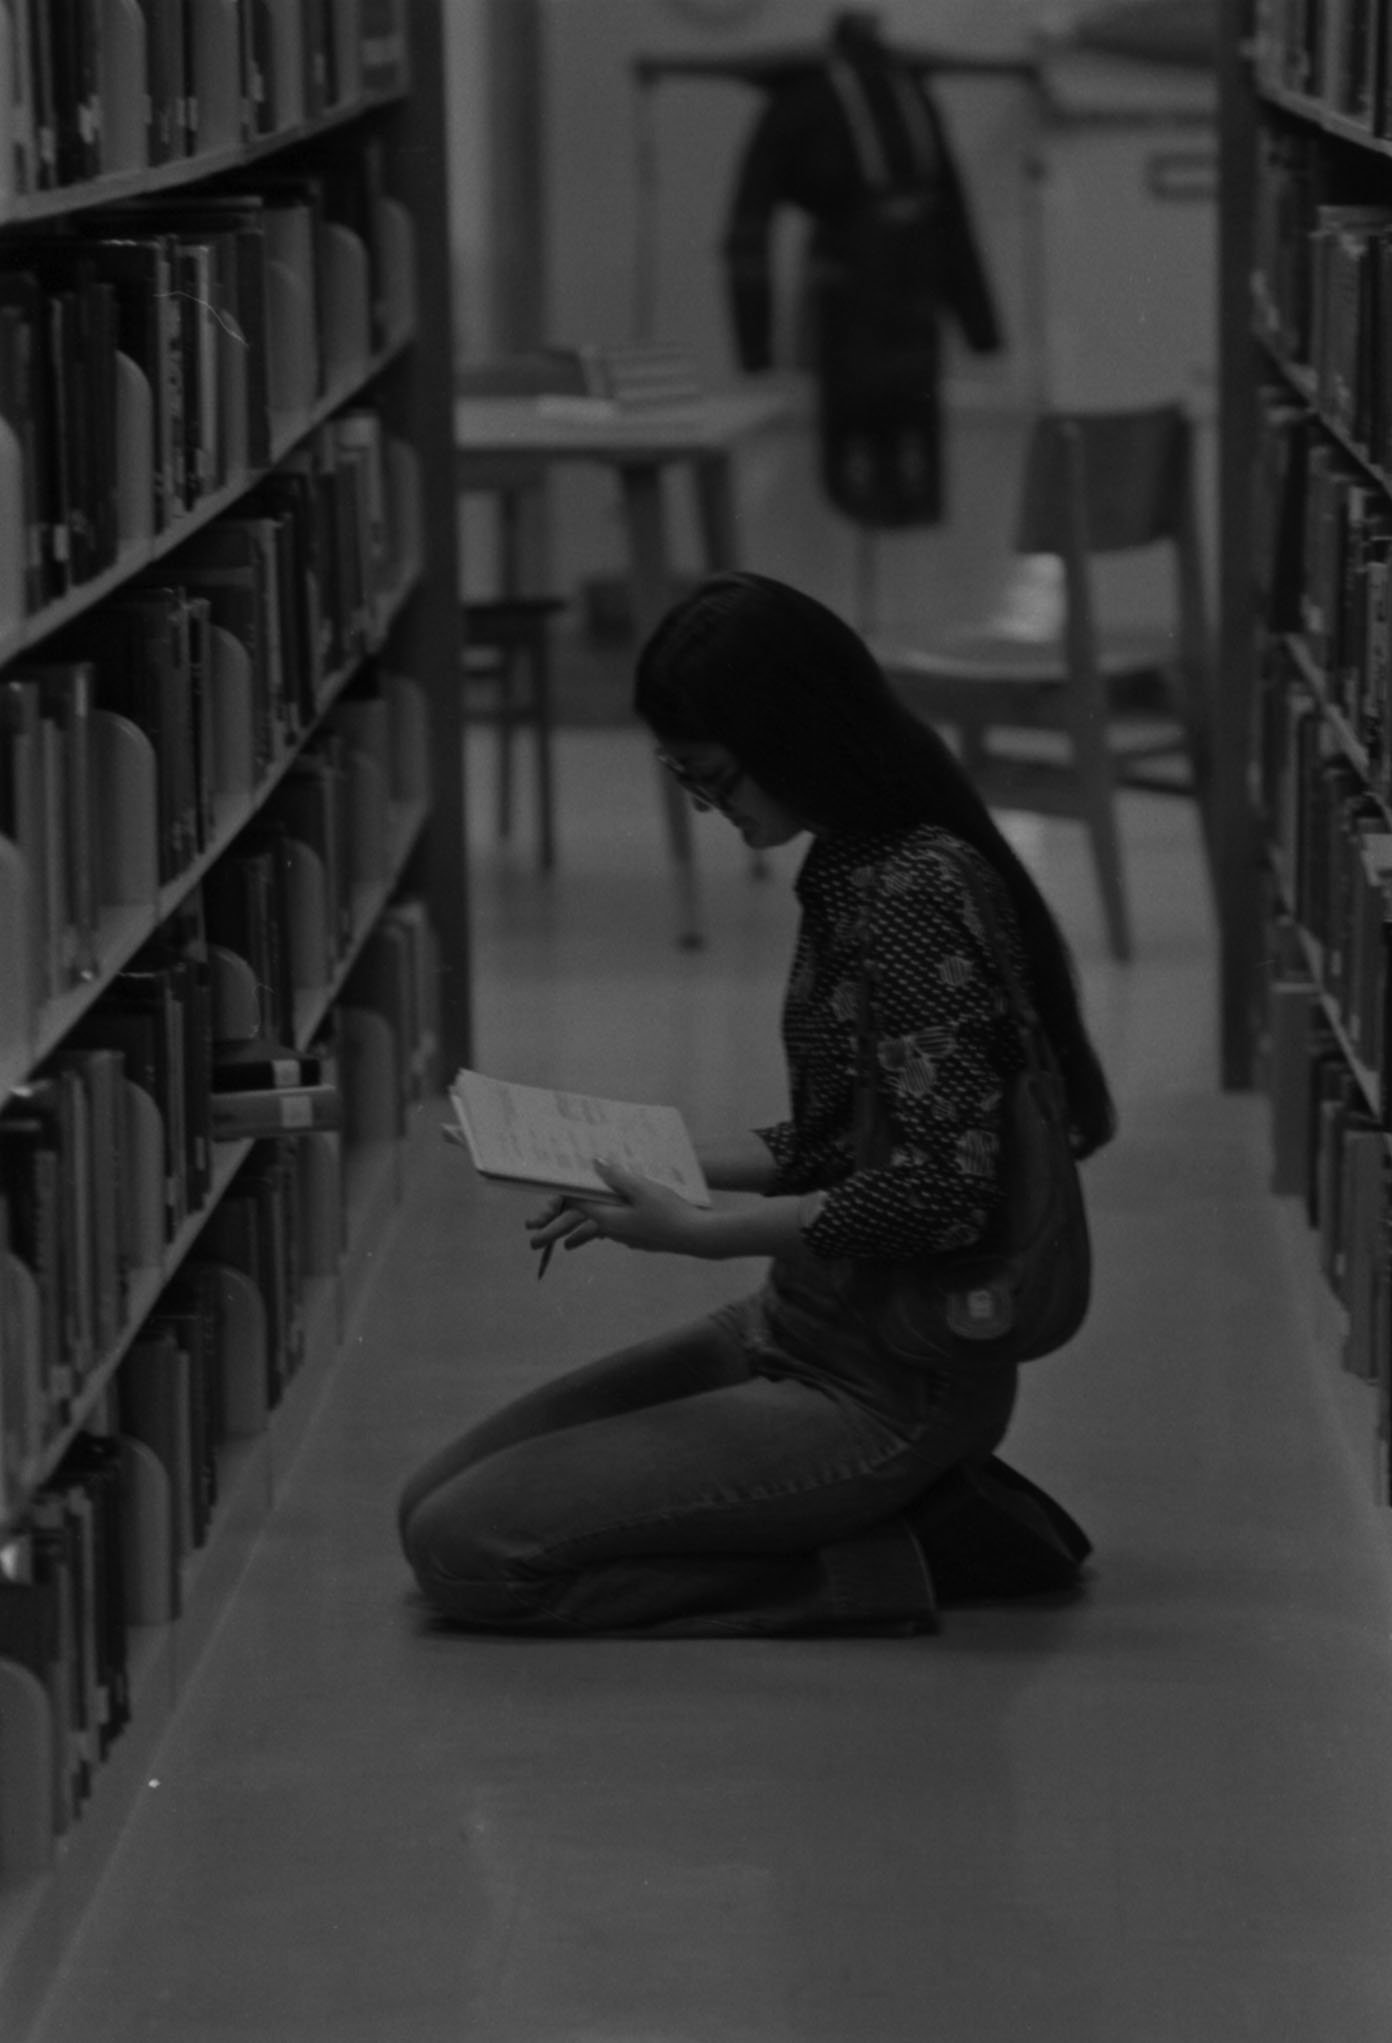 Student looking at a book in a book stack aisle, 1975. EKU Negatives Collection.